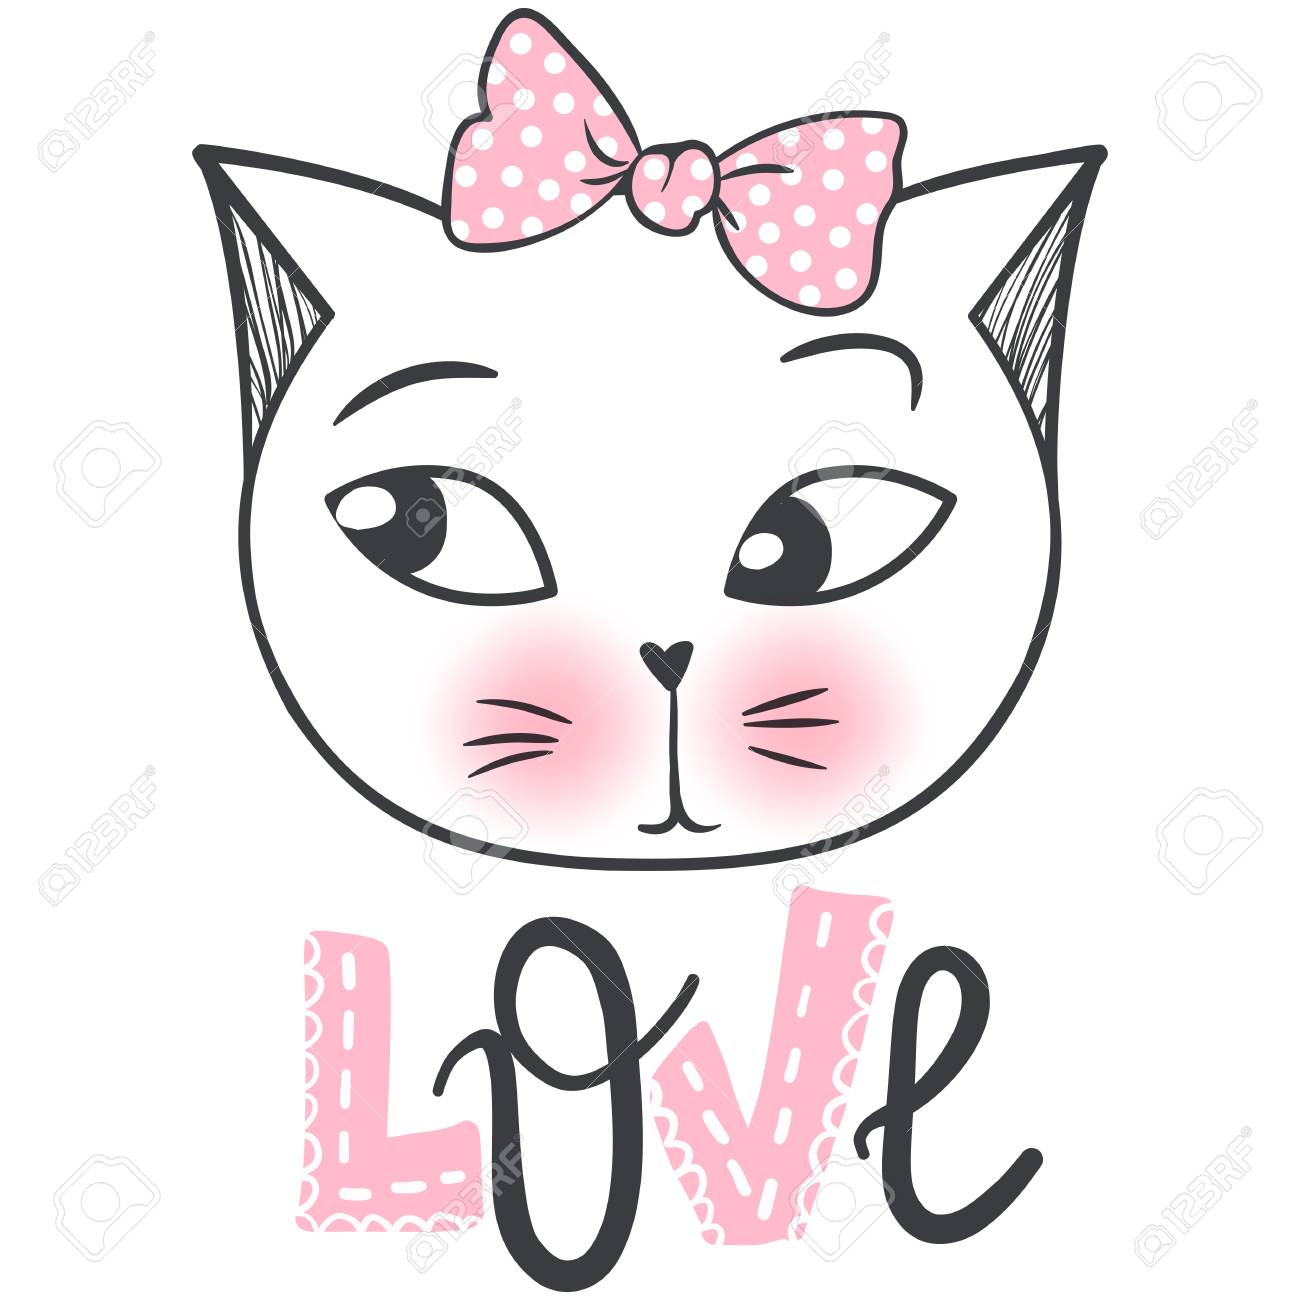 Cute Cat Vector Design Girly Kittens Fashion Cat S Face Animal Royalty Free Cliparts Vectors And Stock Illustration Image 110214345